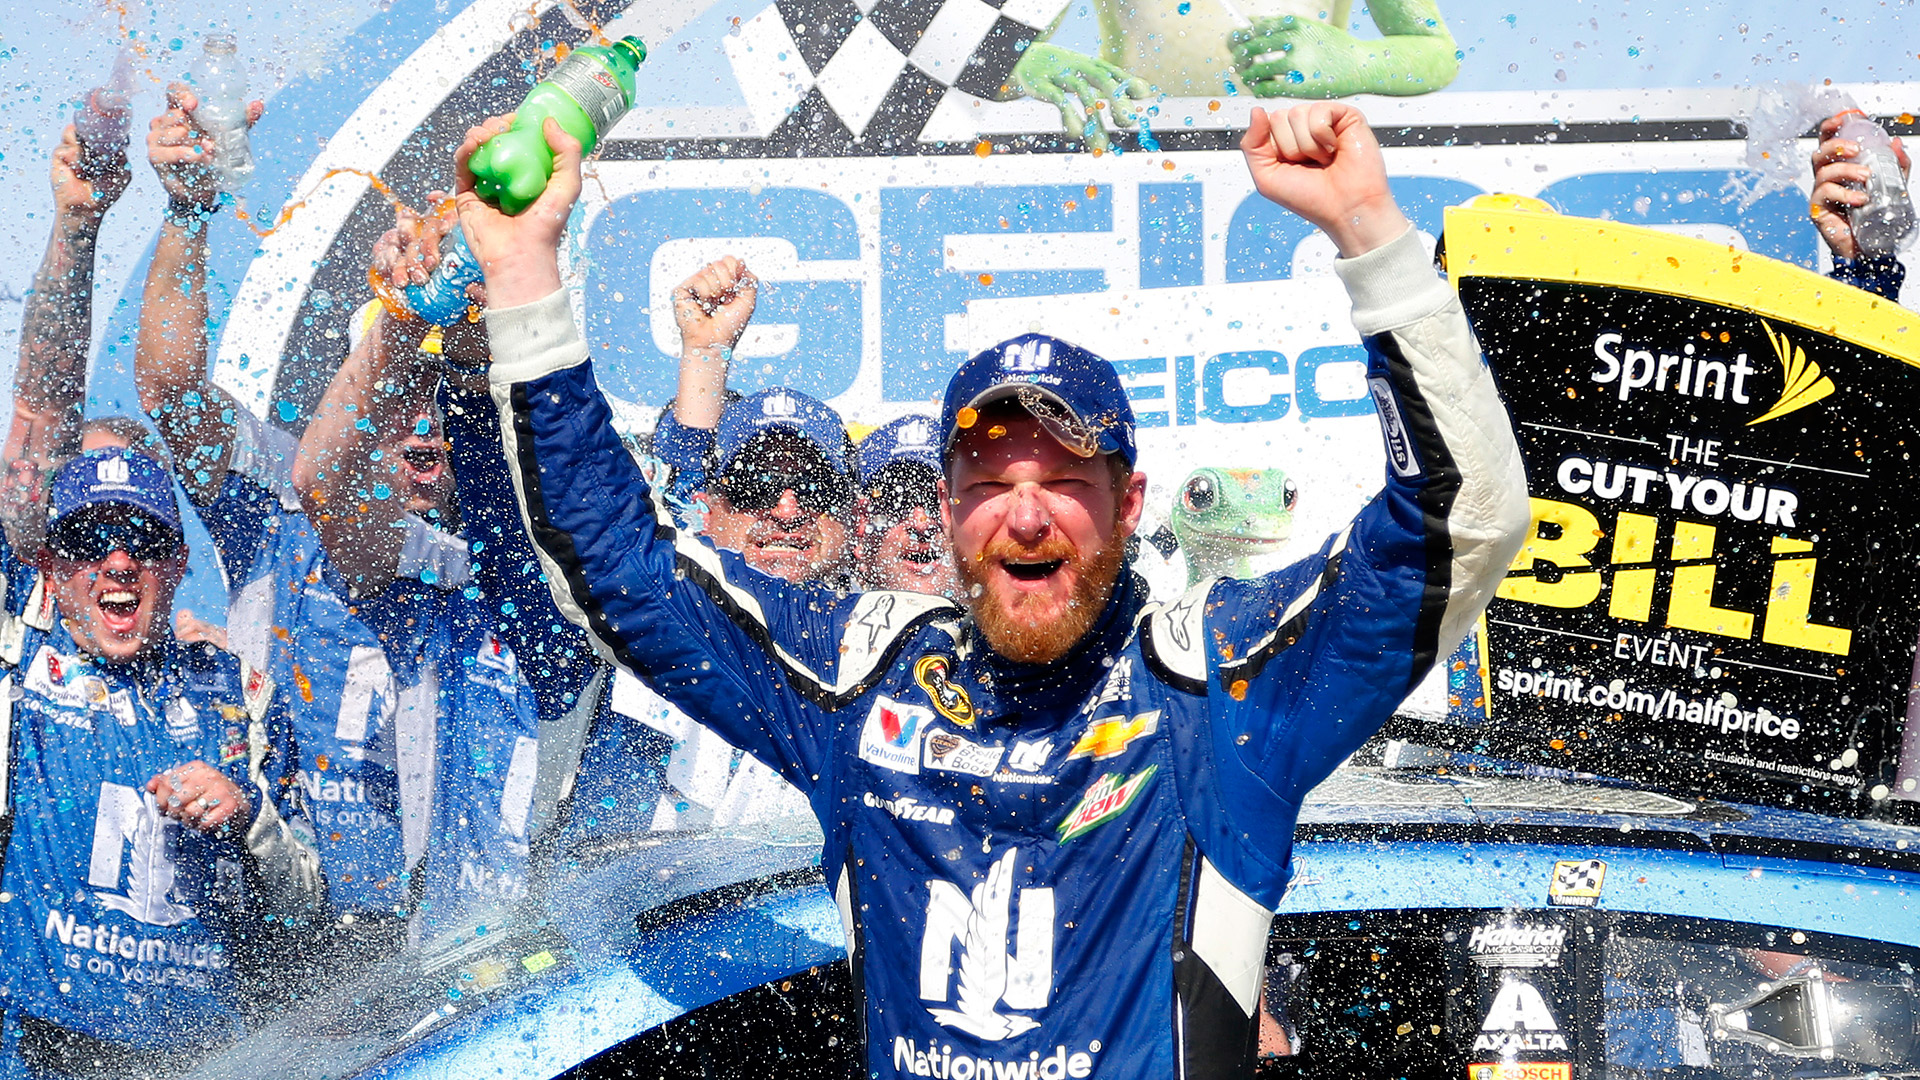 NASCAR Sprint All-Star Race odds and betting preview - Earnhardt Jr. worth a look